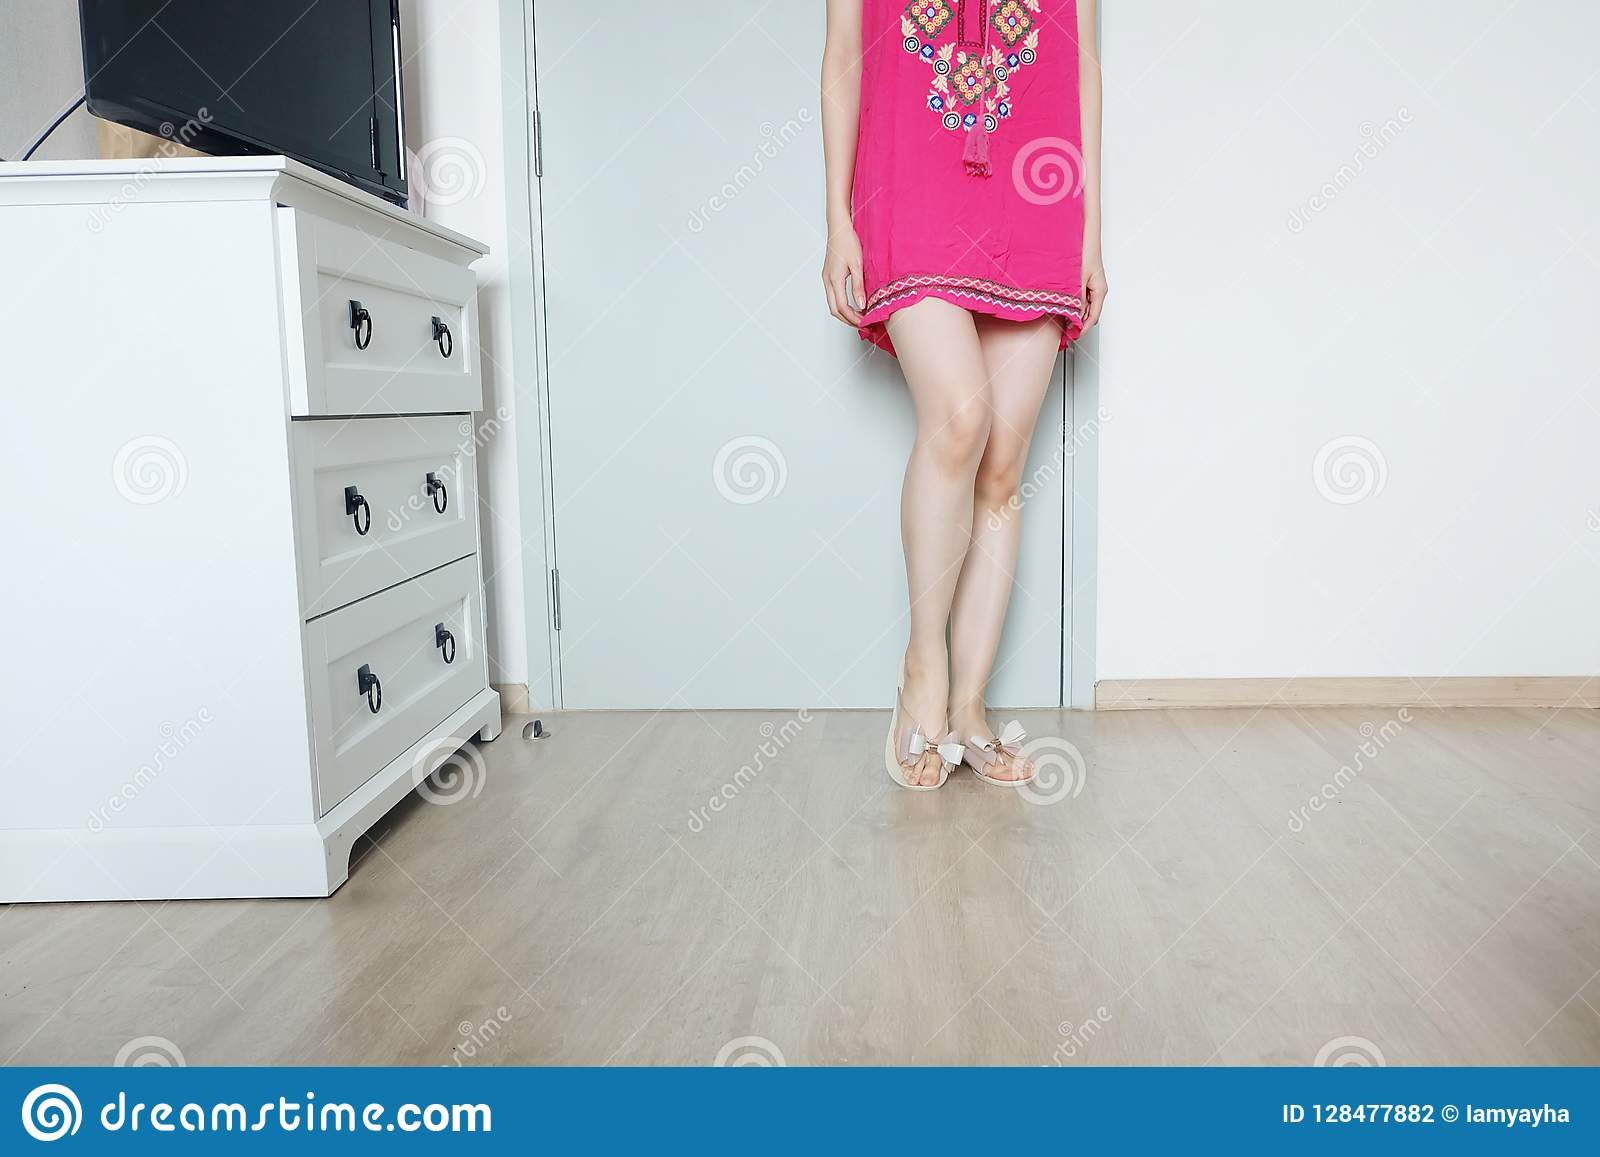 Long legs nude women standing